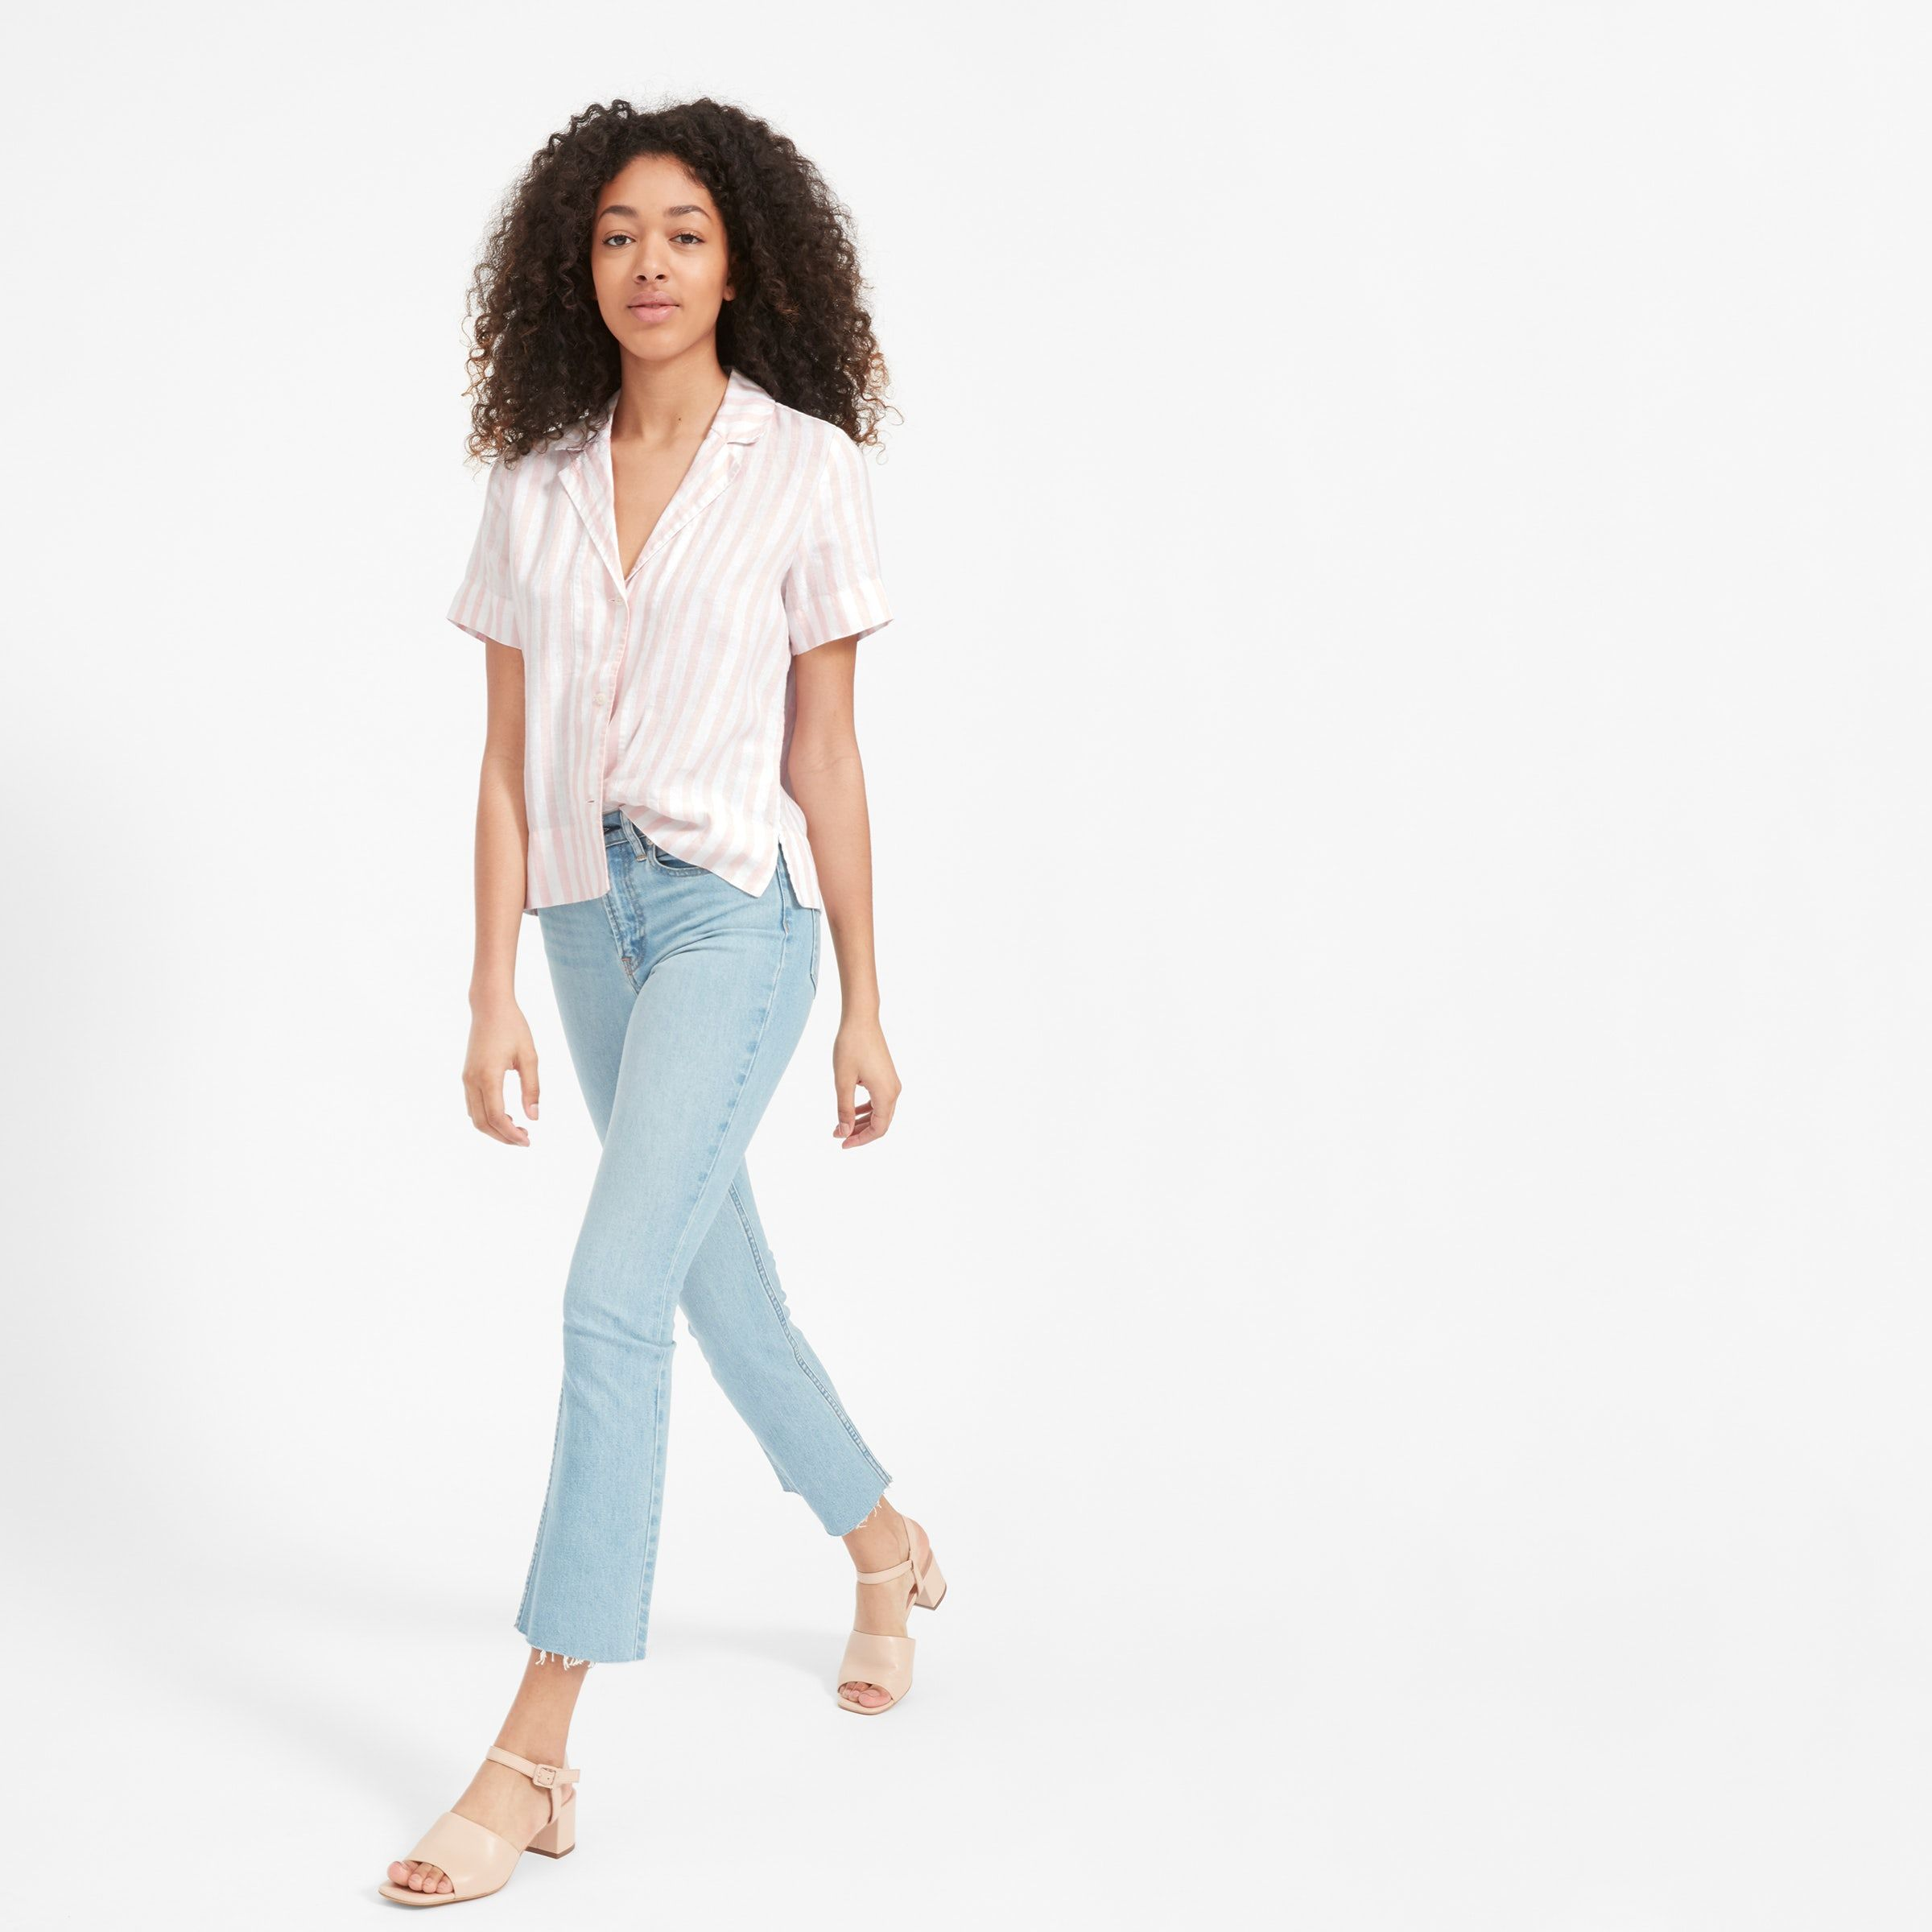 Shop Everlane now for our custom curated collection of